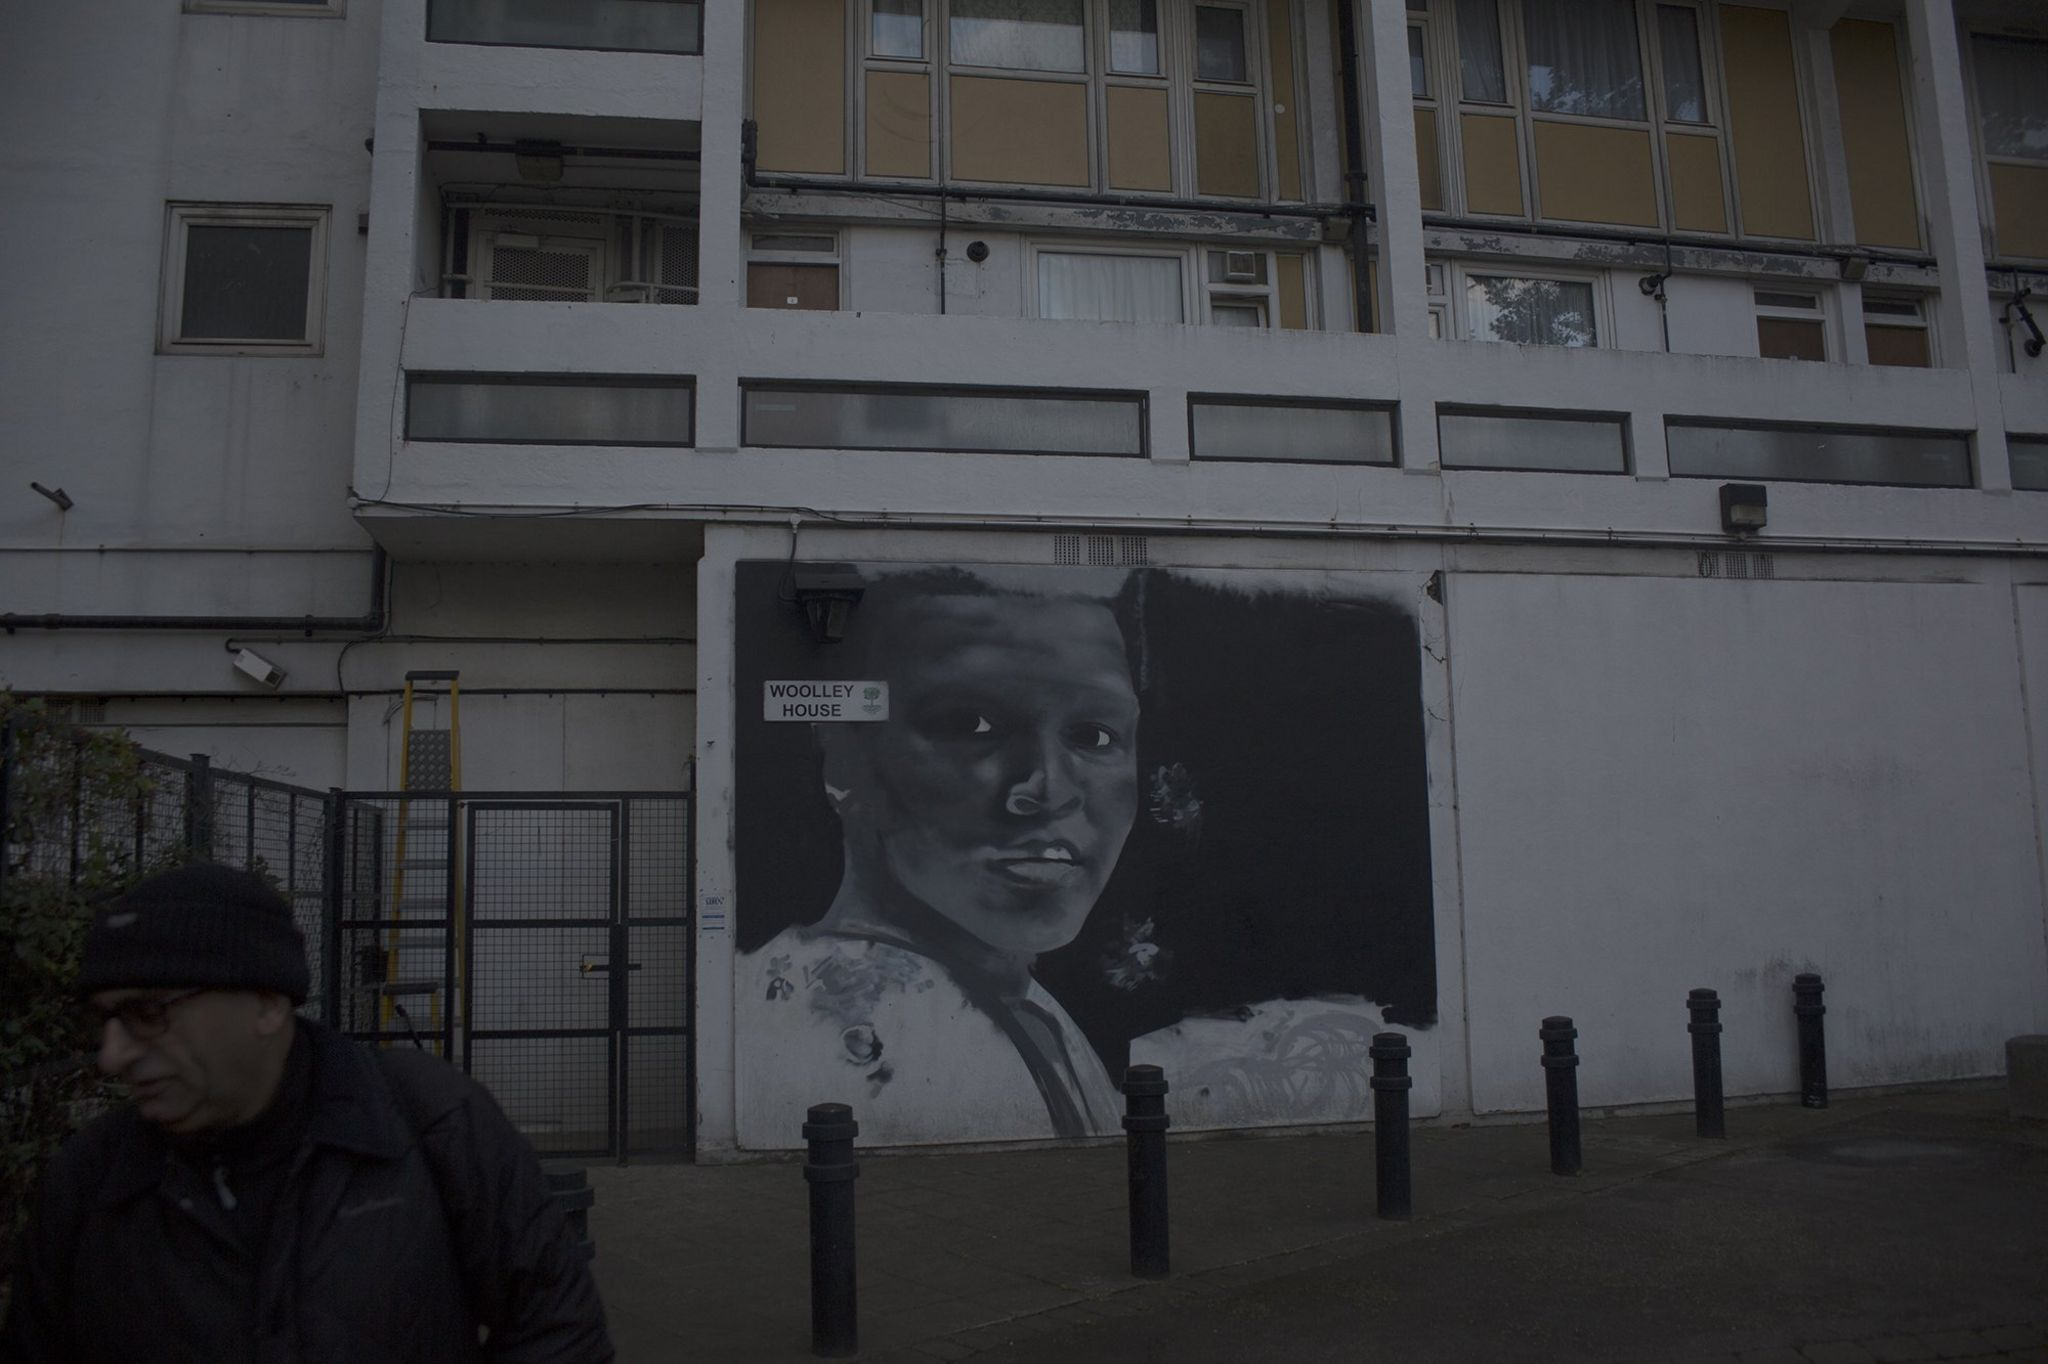 A mural on the wall of a block of flats